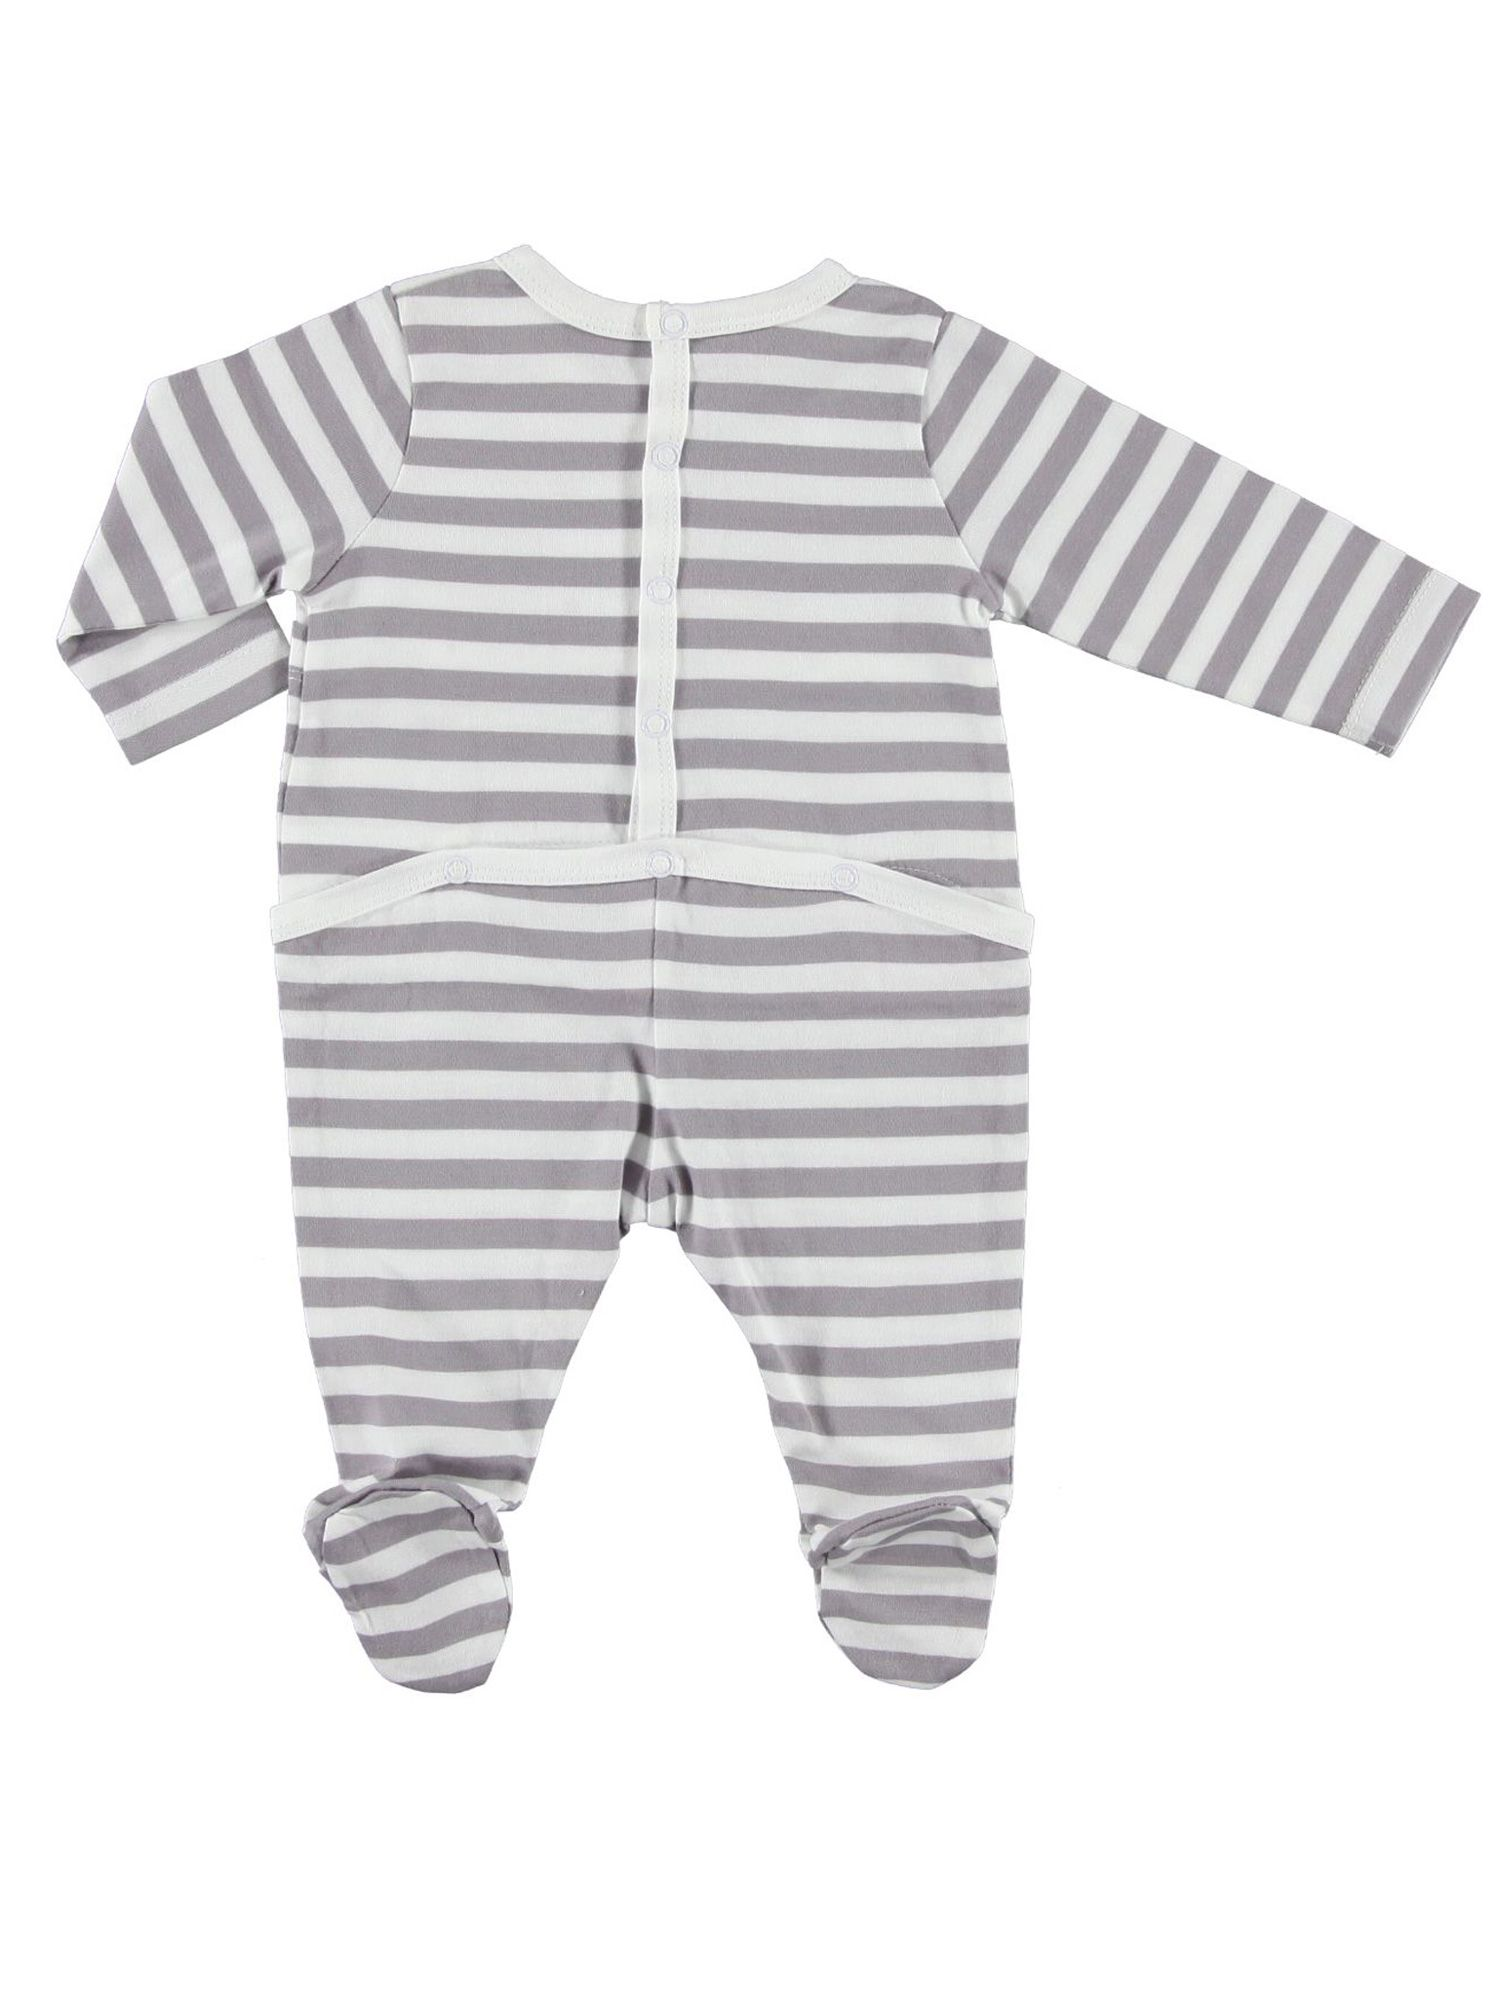 Boys striped cotton all in one